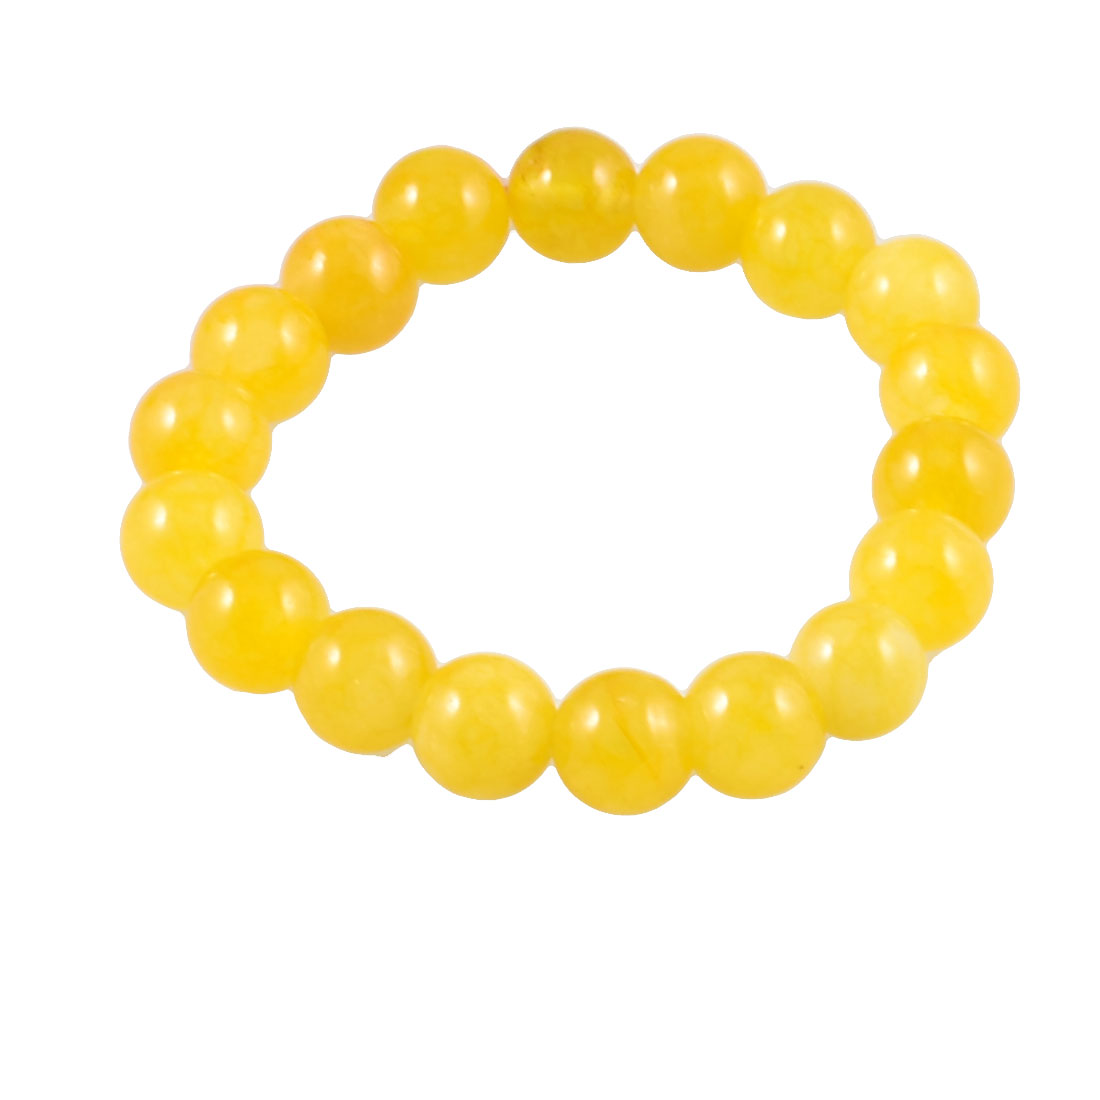 Lemon Yellow Glittery 10mm Diameter Beads Elastic String Bracelet Hand Chain for Lady Woman